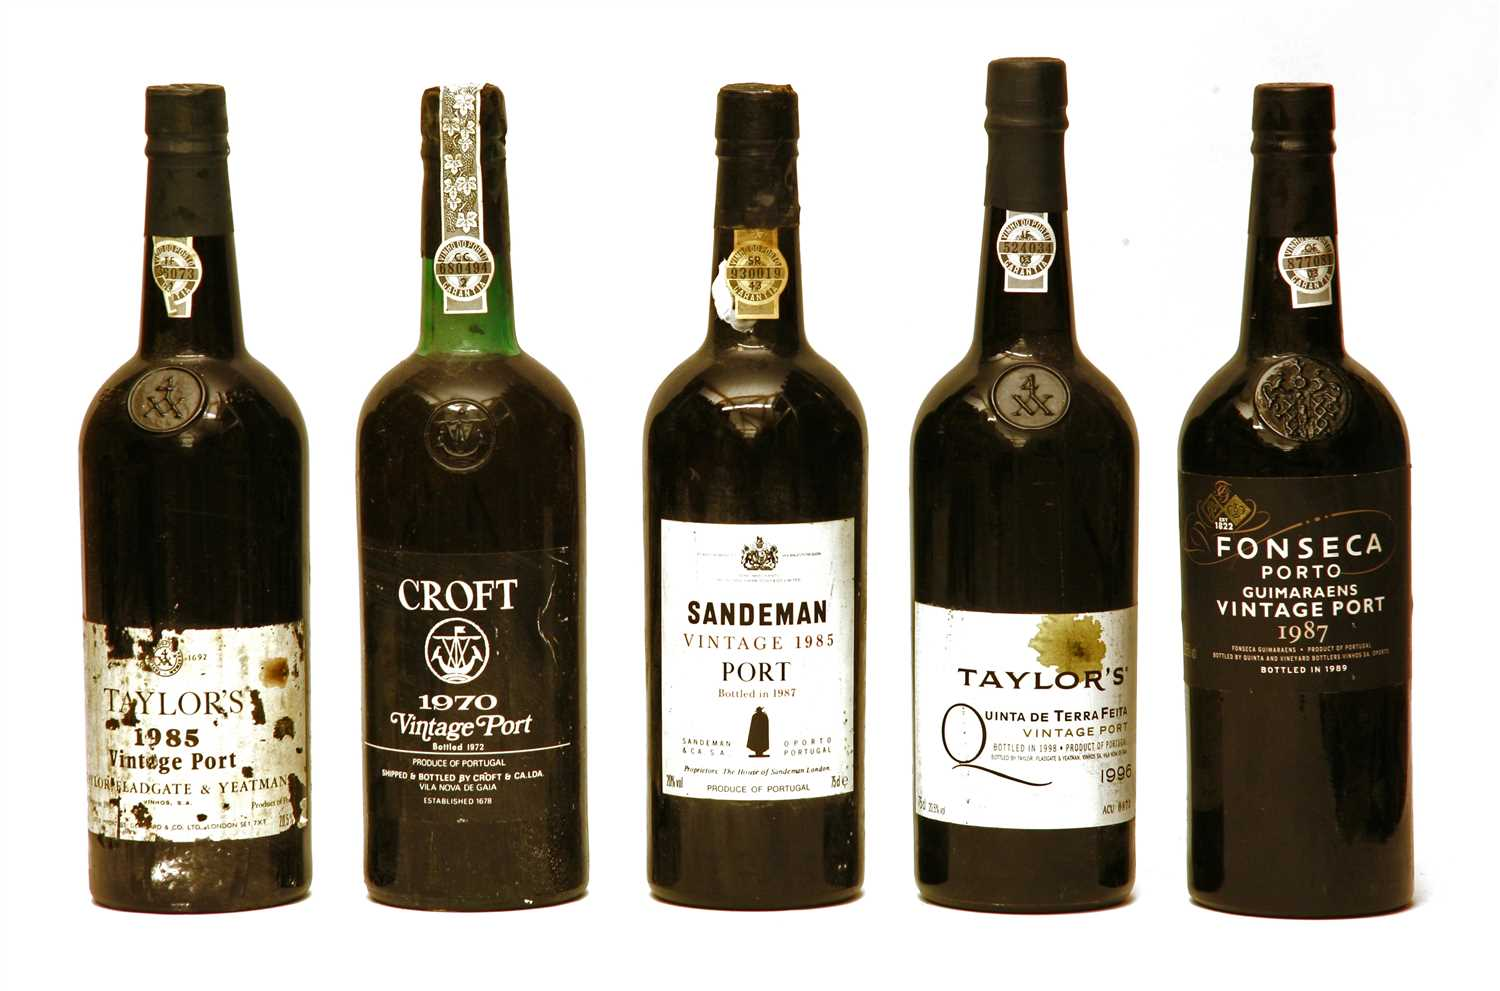 Lot 38 - Assorted port: Croft, 1970; Fonseca 1987, Taylor's, 1985 and 1996, Sandeman, 1985, 5 bottles total